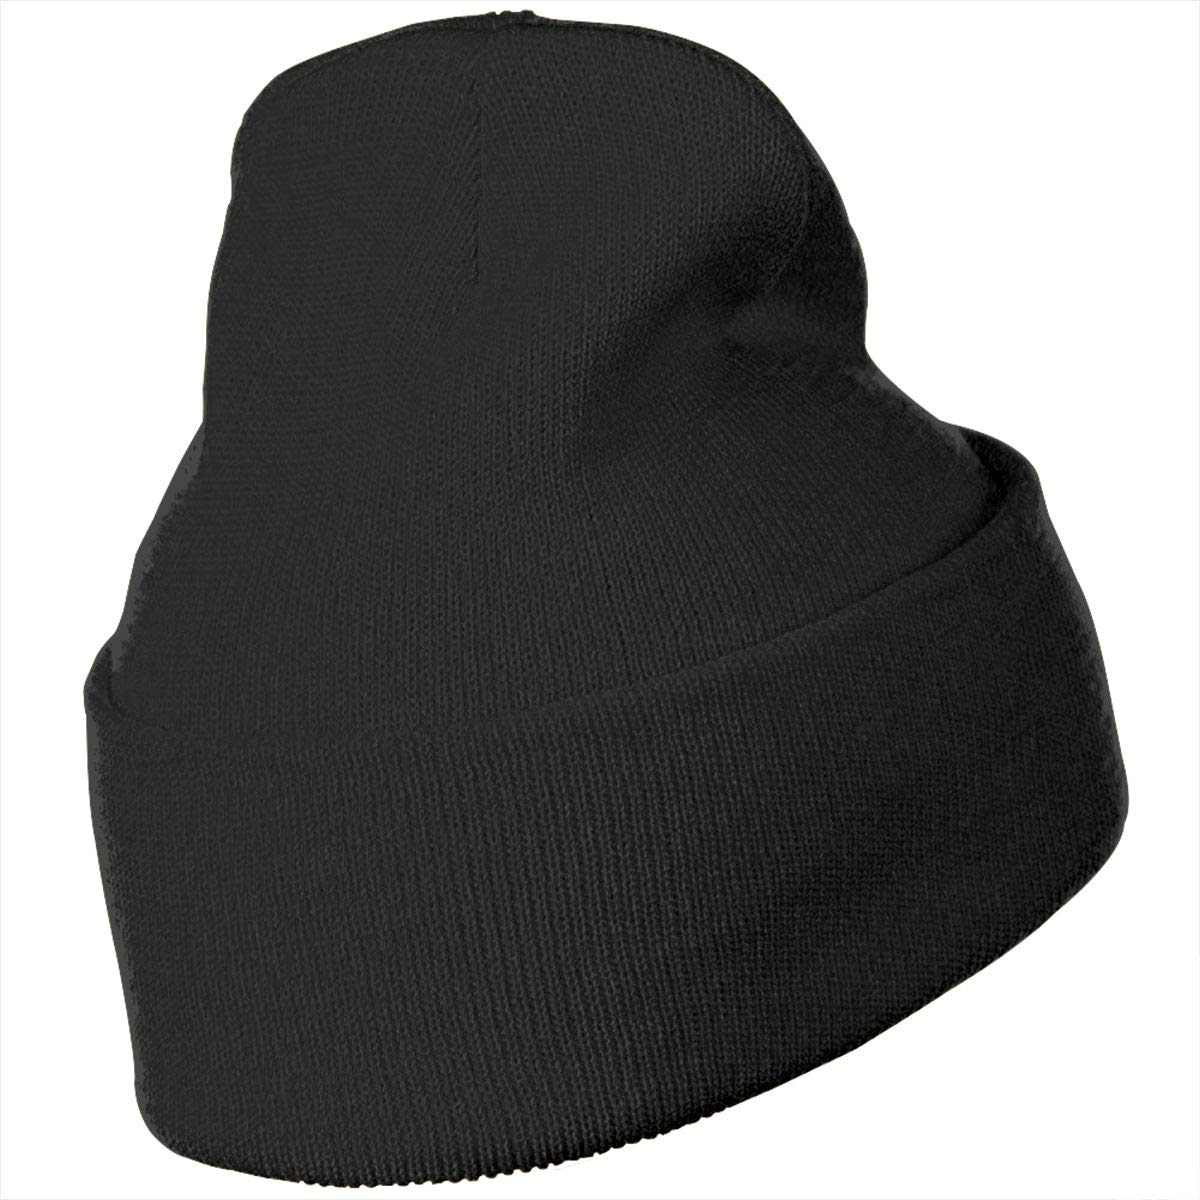 SARMY Black White Horse Winter Wool Cap Warm Beanies Knitted Hat